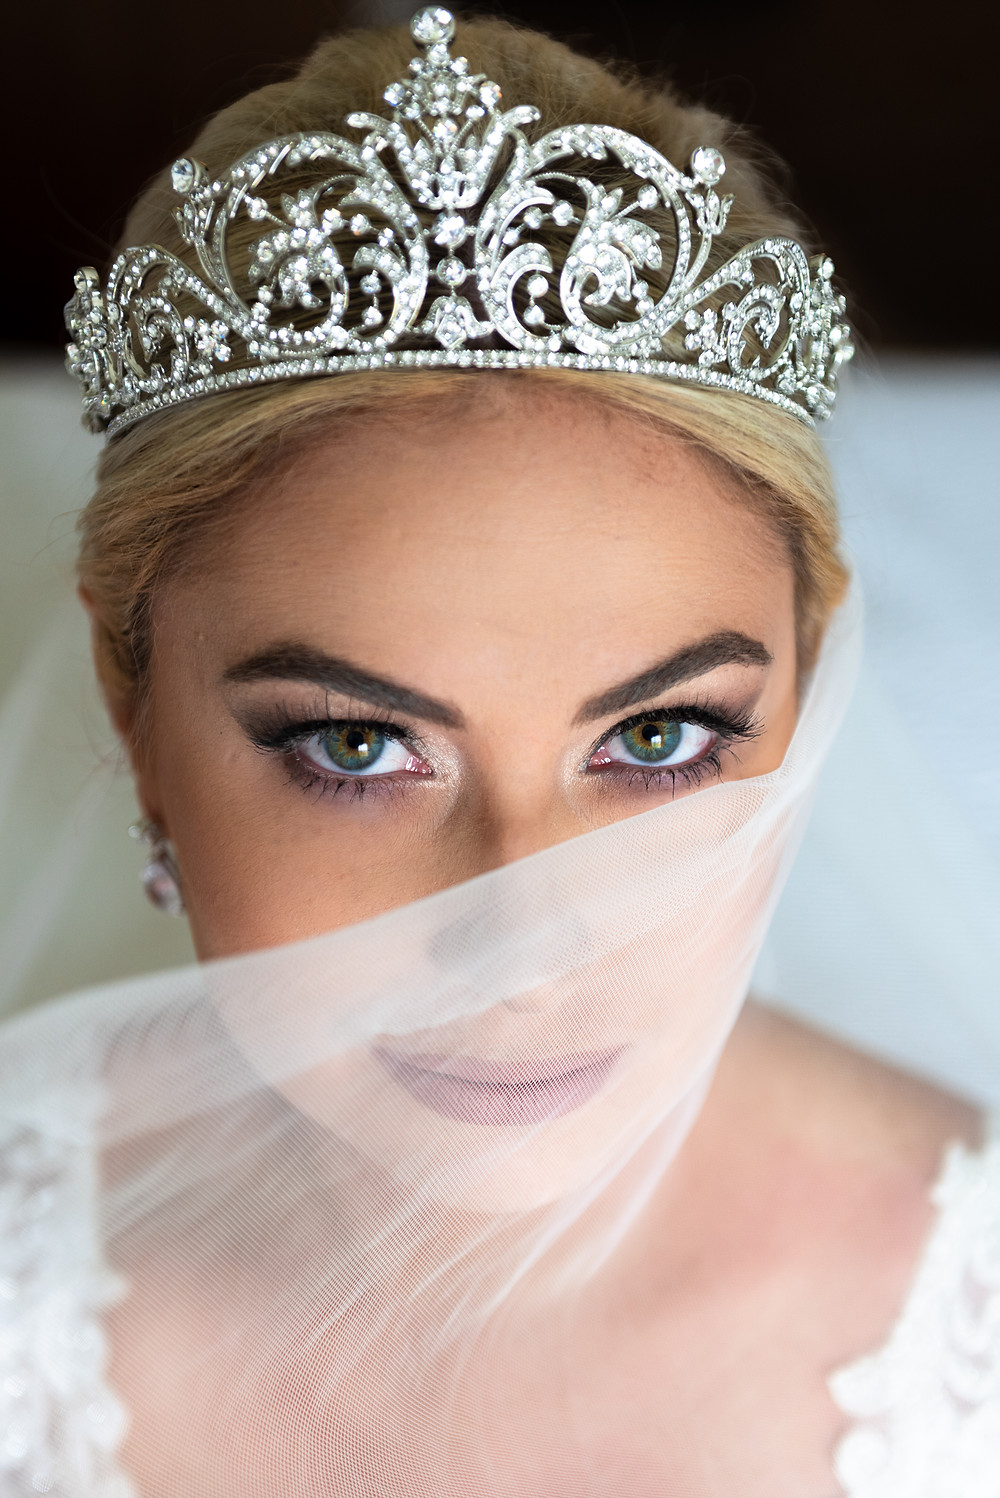 Bridal eye makeup with veil and crown